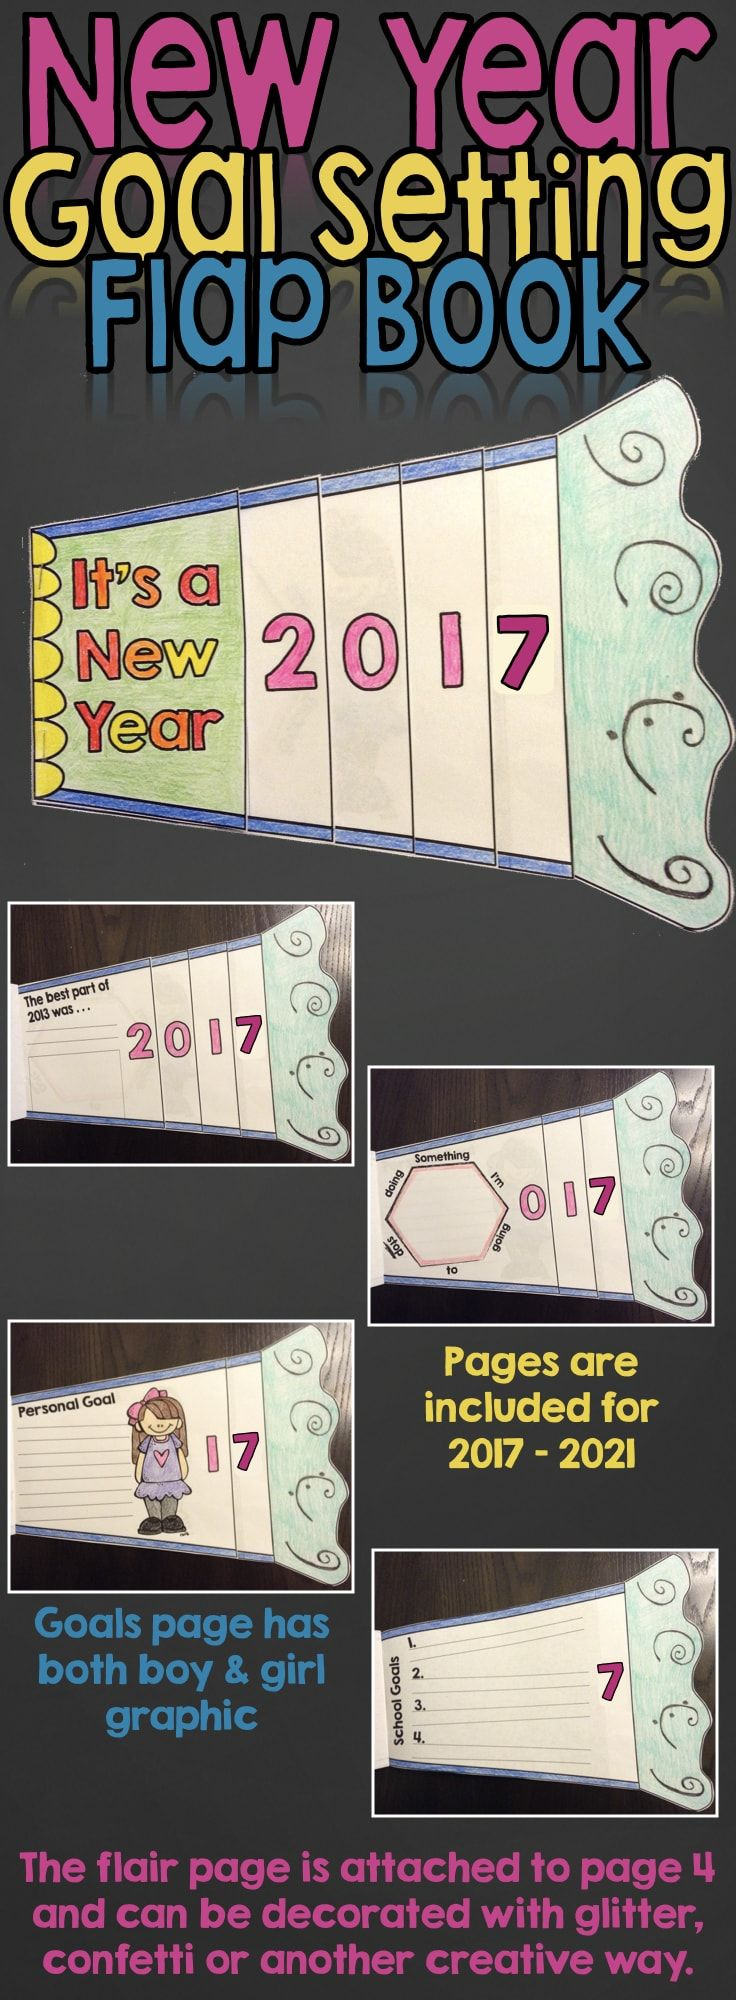 Ring in the New Year by having students reflect on their best moment in 2015 and set personal and academic goals for 2016. This flap book gives students an opportunity to set meaningful SMART goals during the first couple weeks back after the holiday break.